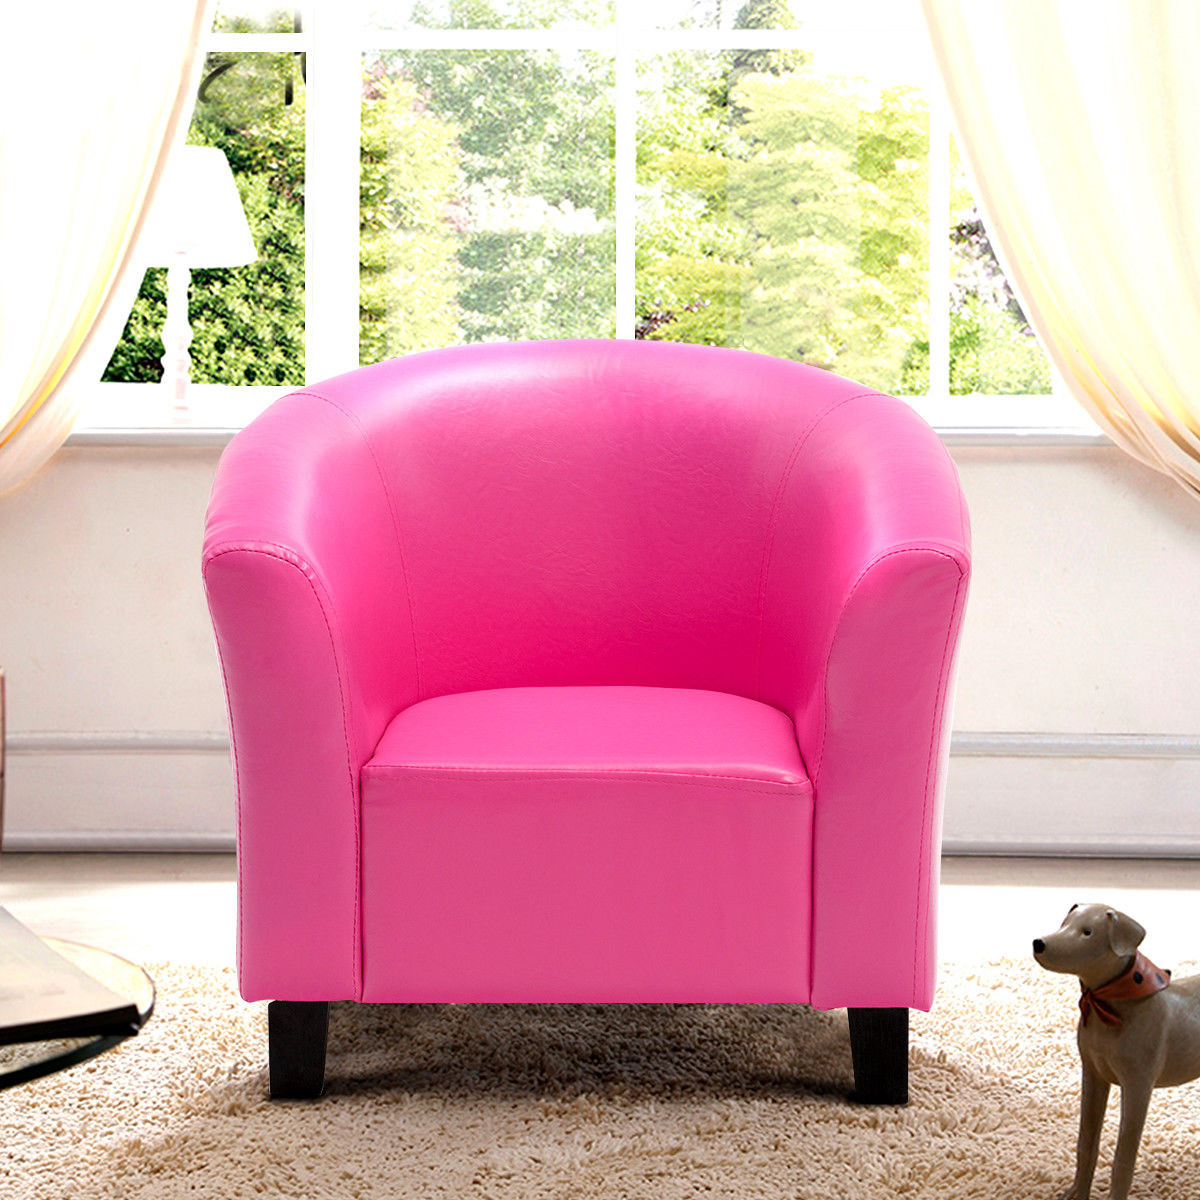 Costway PU Leather Kids Sofa Armrest Chair Couch Child Birthday Gift Living Room Rose